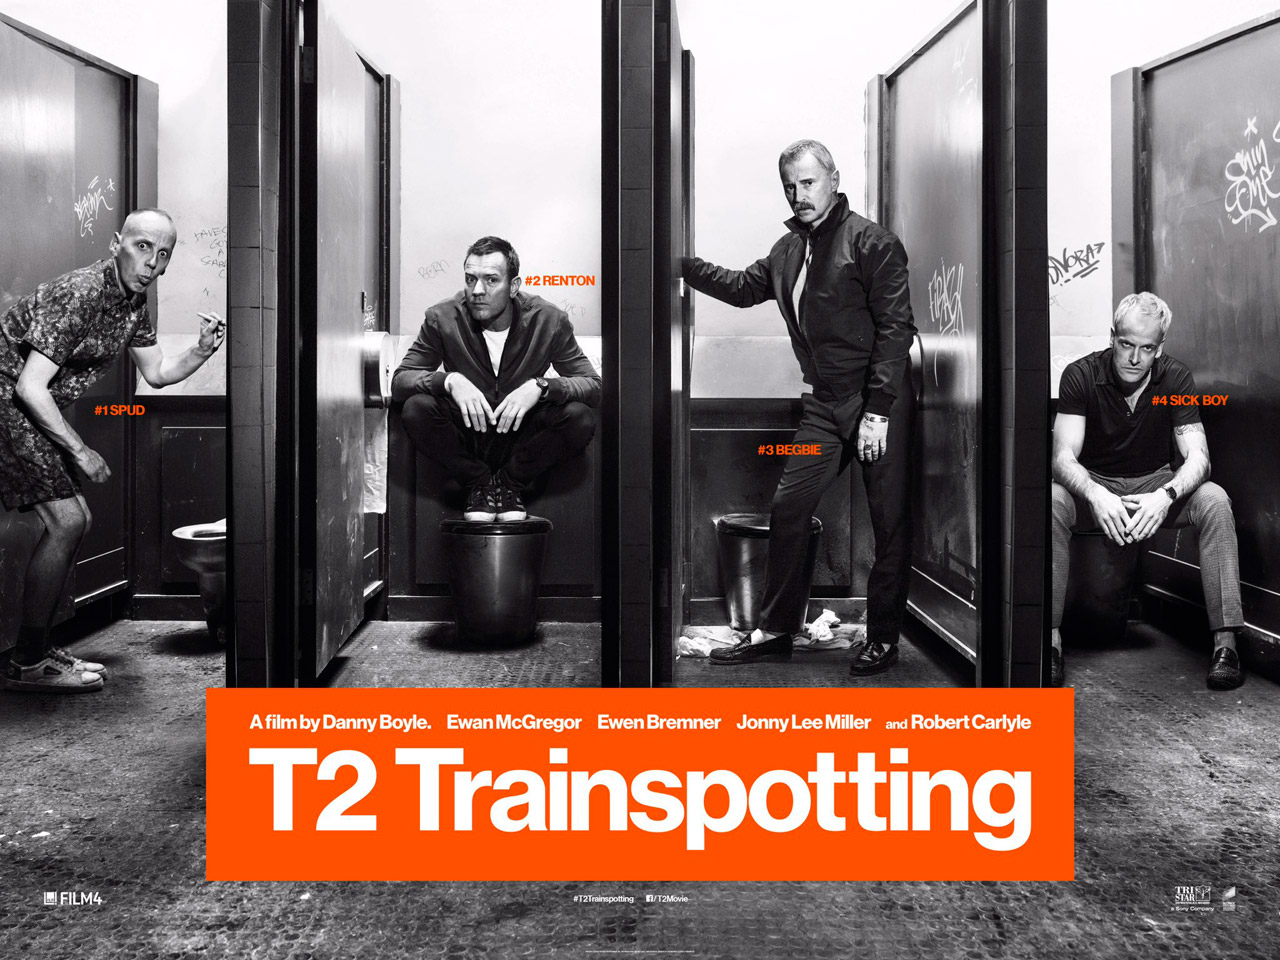 The 'Trainspotting' sequel finally has a trailer, and it looks really amazing